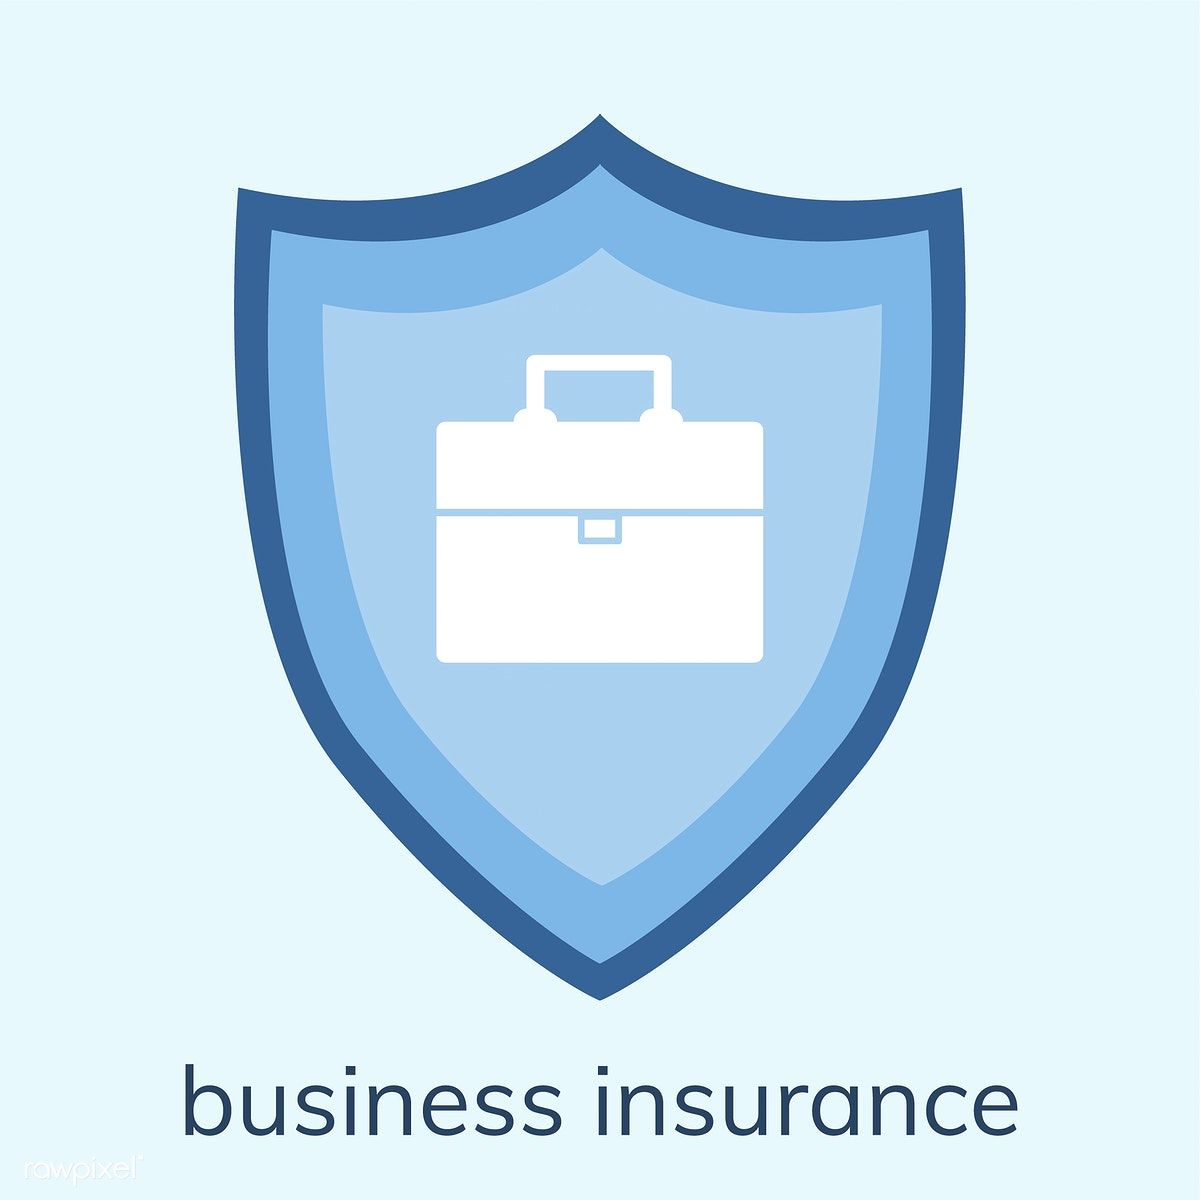 Illustration A Business Insurance Icon Free Image By Rawpixel Com